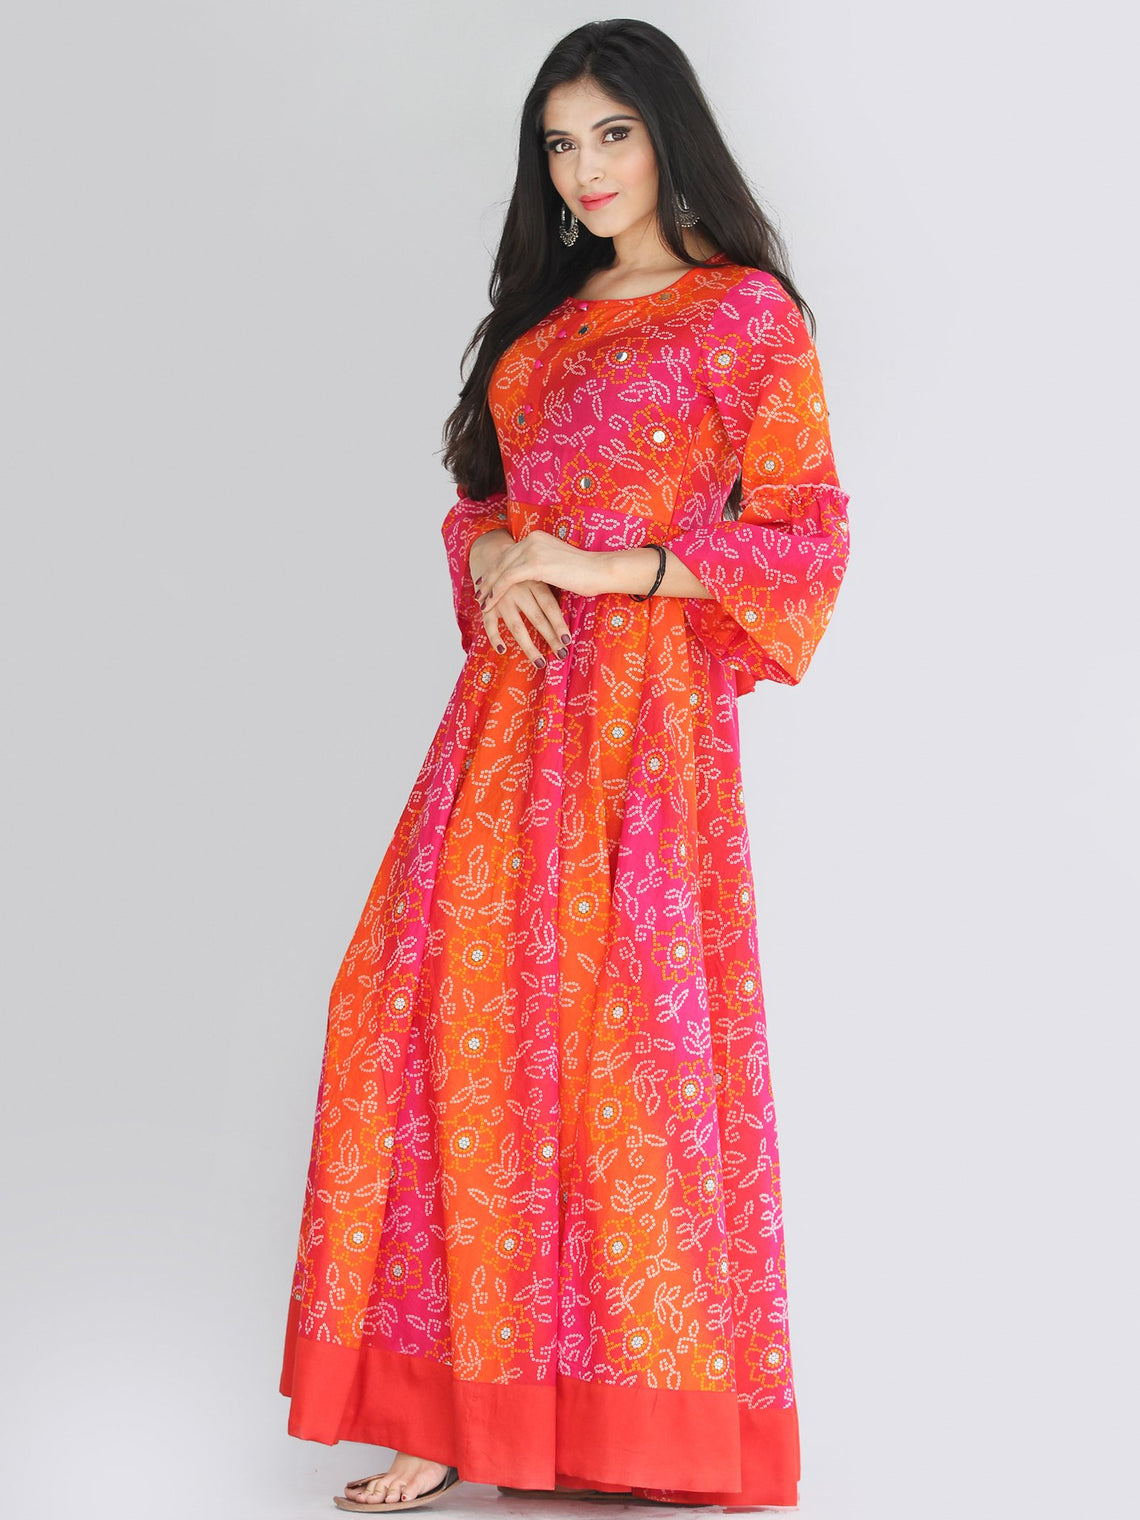 Maher - Pink Orange Bandhani Printed Urave Cut Long Dress  - D381F2238